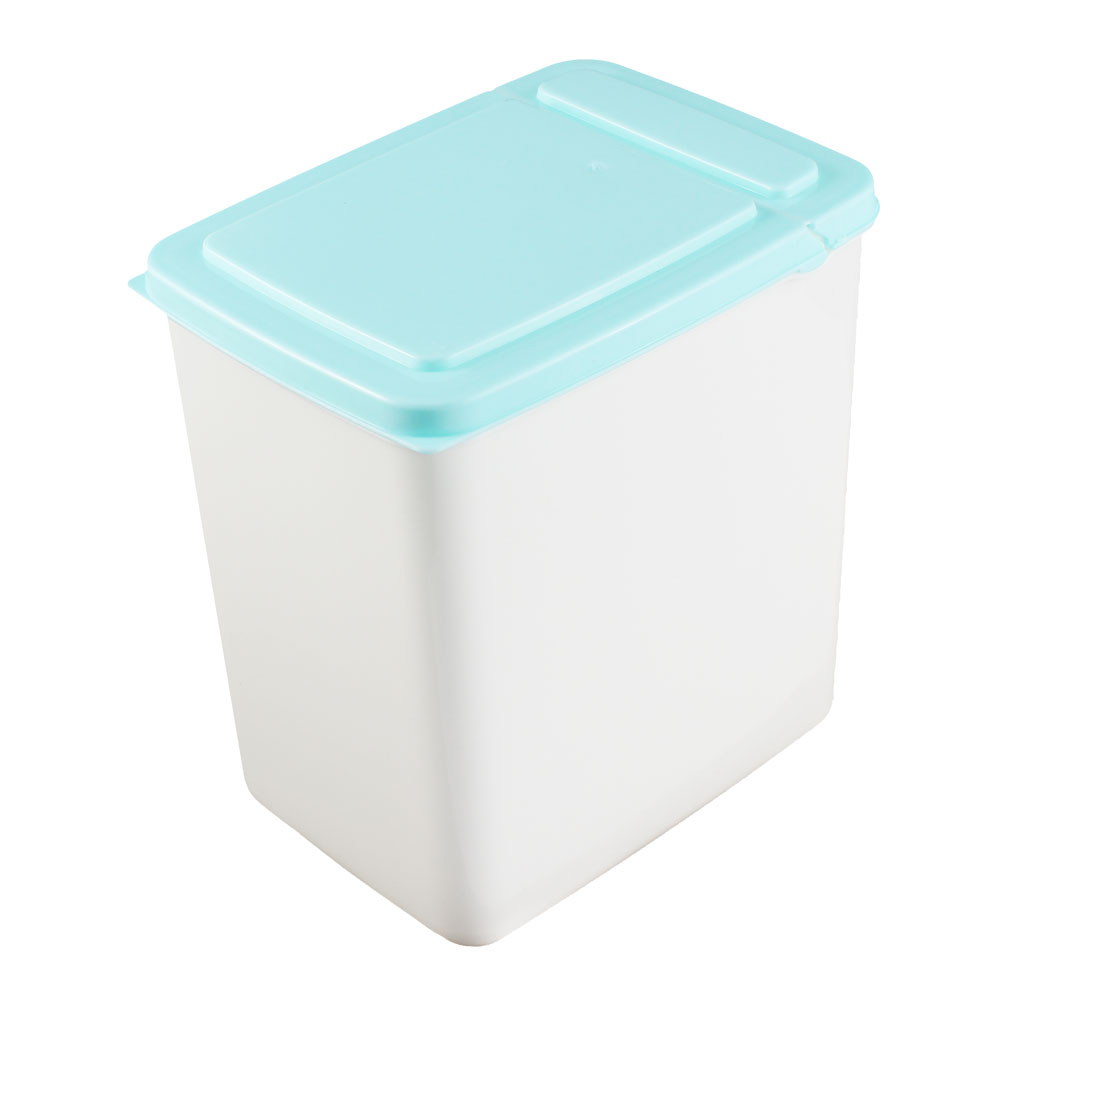 Home Plastic Cuboid Shaped Airtight Food Storage Box Container 2L Blue